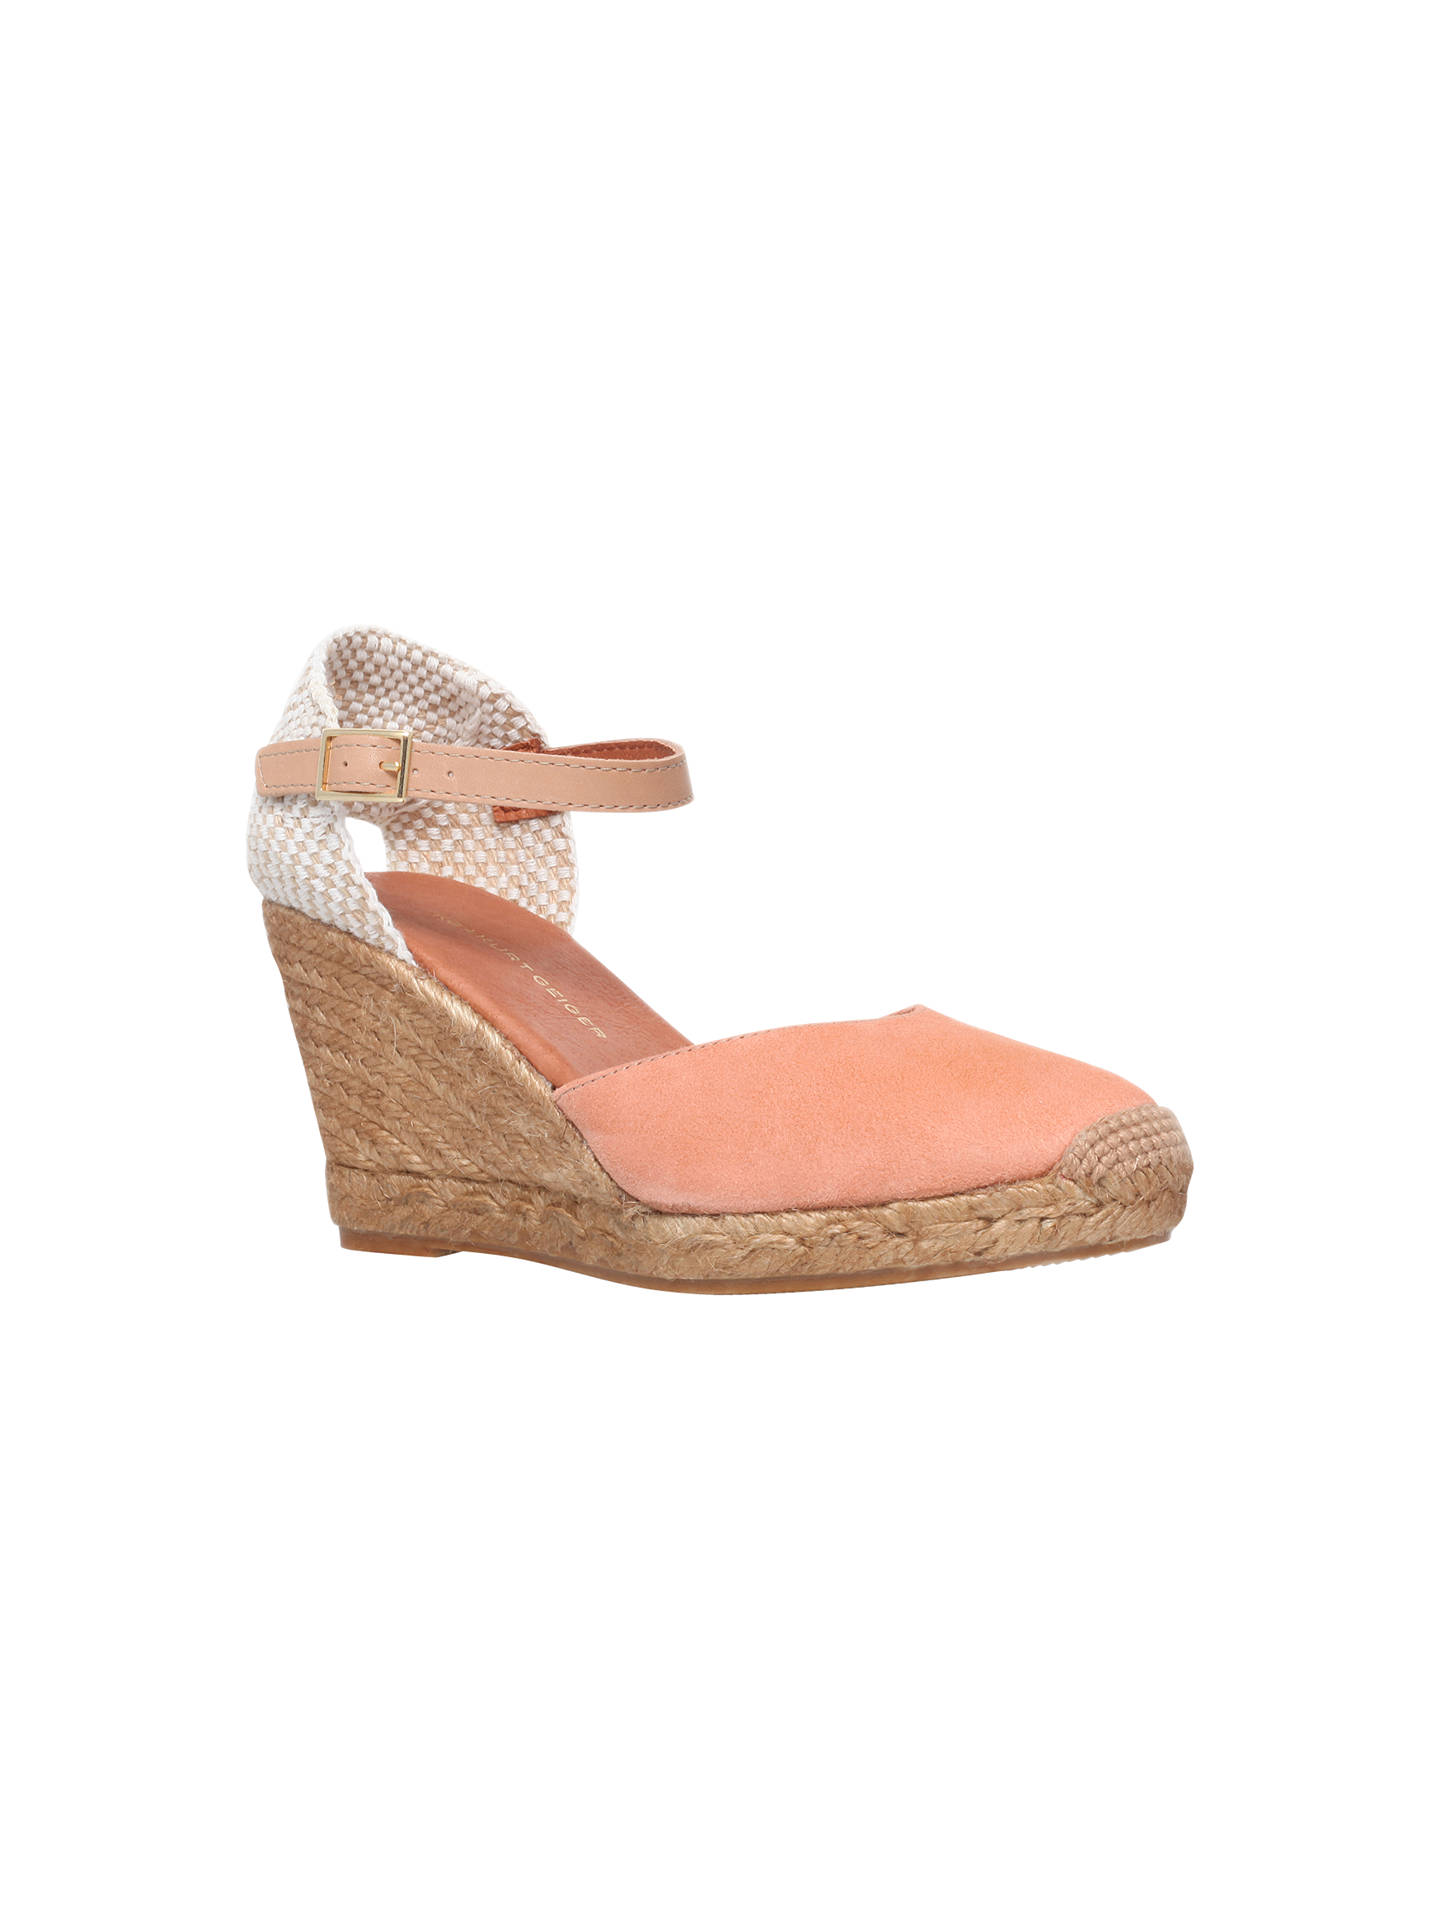 2fcfe56d5df KG by Kurt Geiger Monty Wedge Heel Espadrilles at John Lewis & Partners